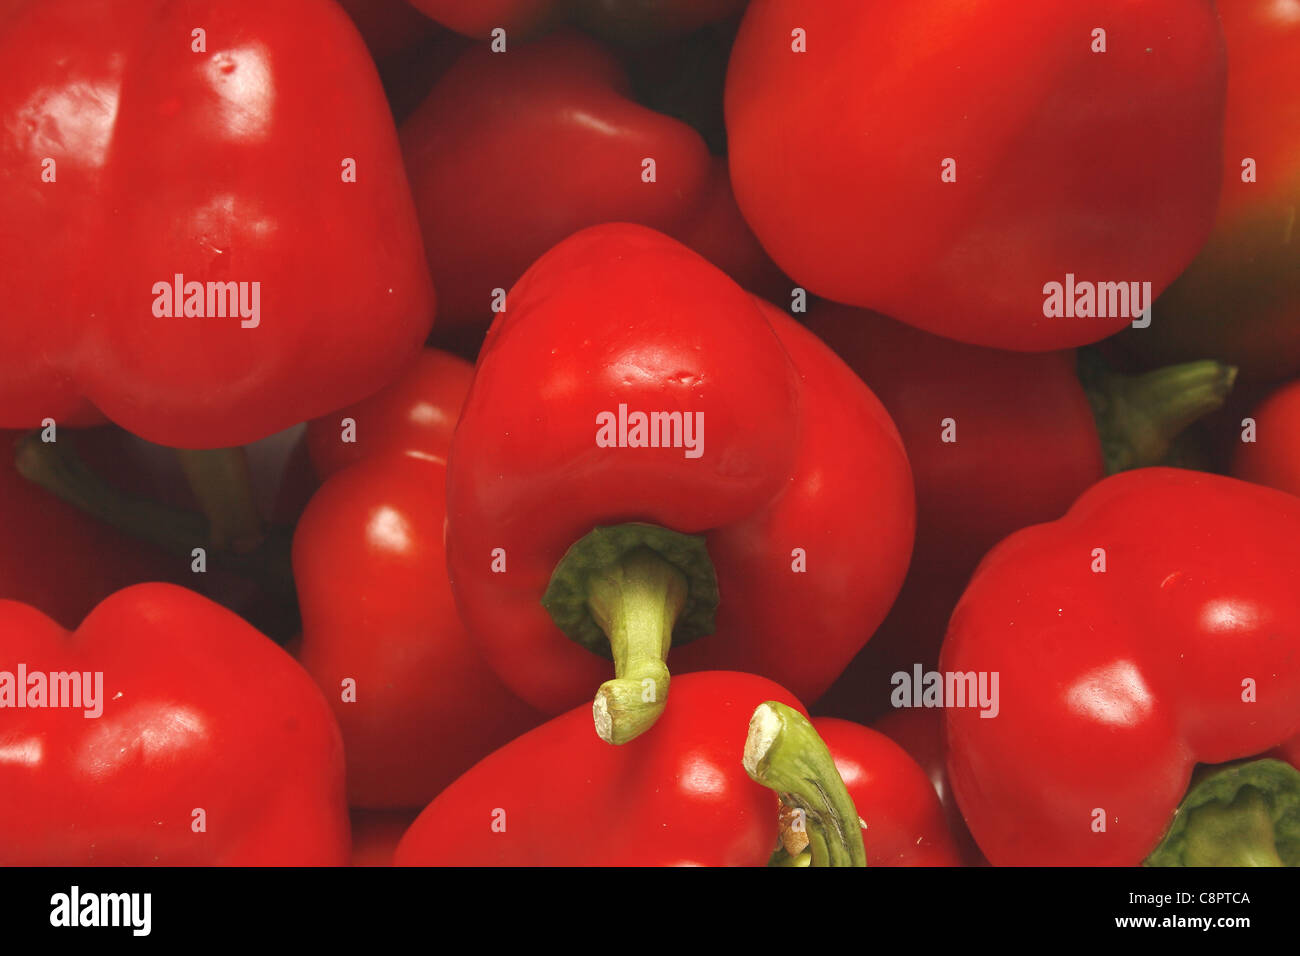 close up iamge of red bell peppers Capsicum annuum - Stock Image